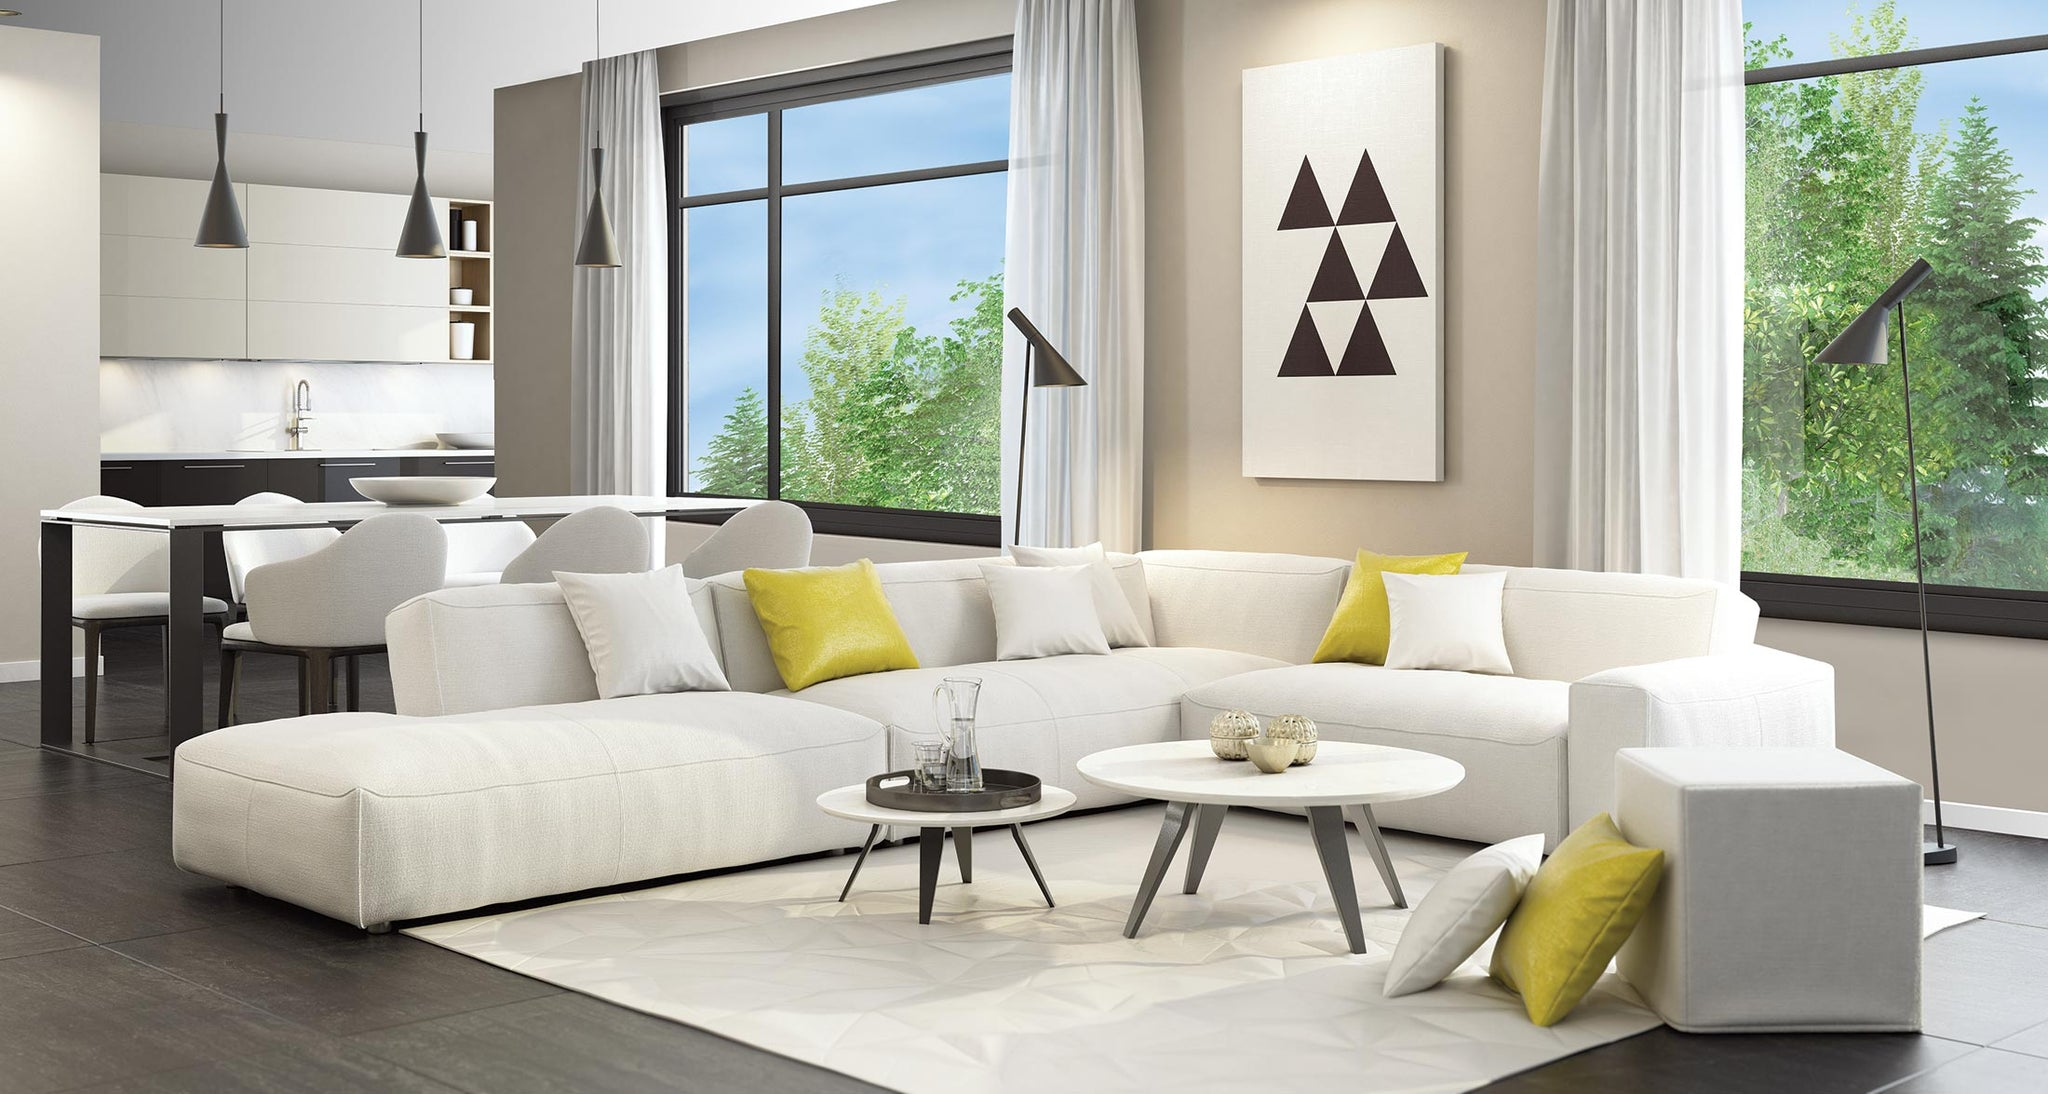 Interior design, Fresh Towns, condo design, Ottawa, interior design